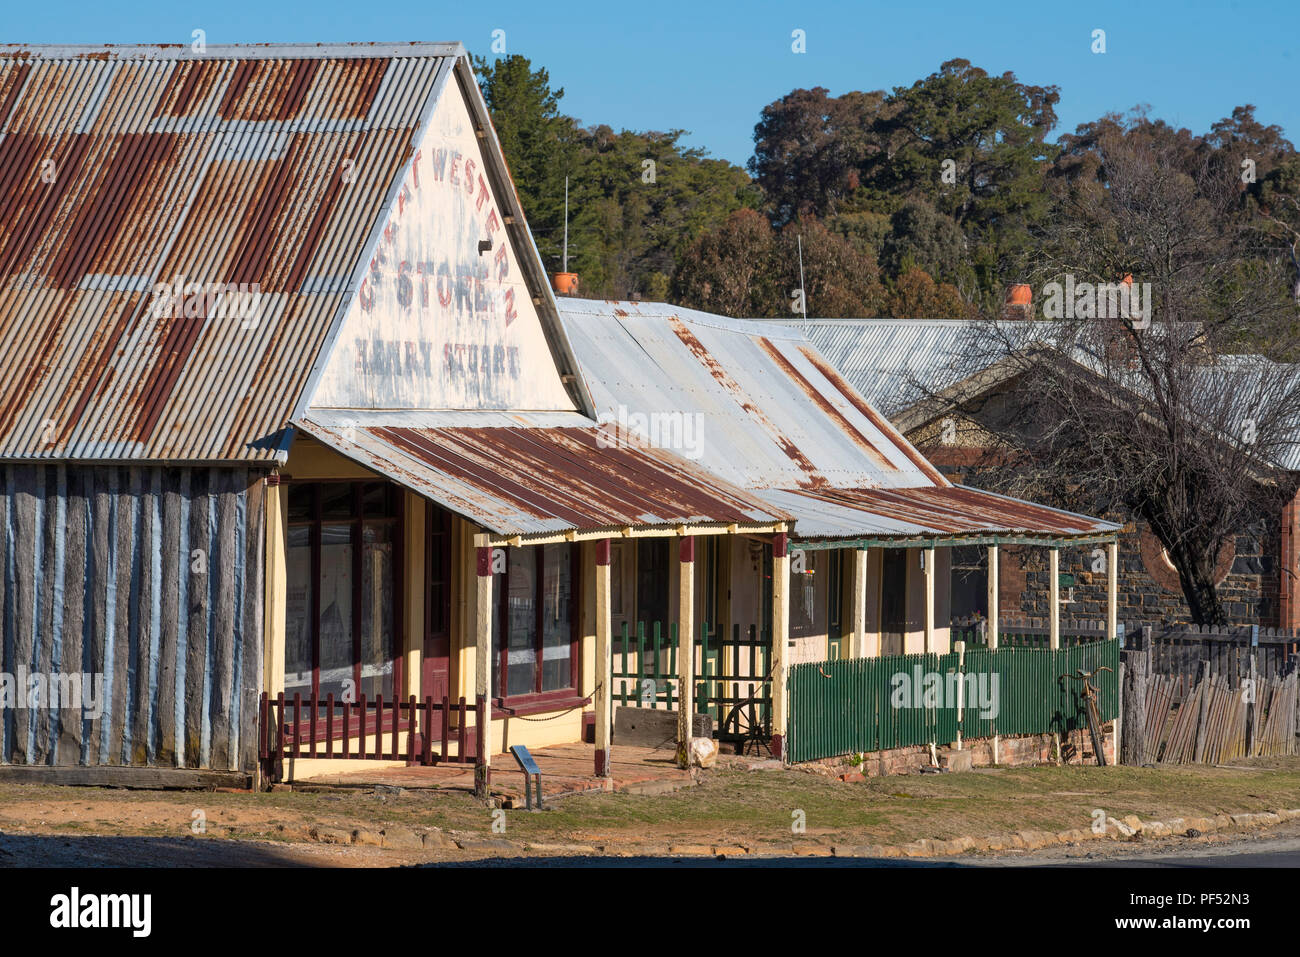 Opened in 1872 The Great Western Store in Hill End, NSW acted as post office & provisions shop for gold diggers and residents. It is still open - Stock Image